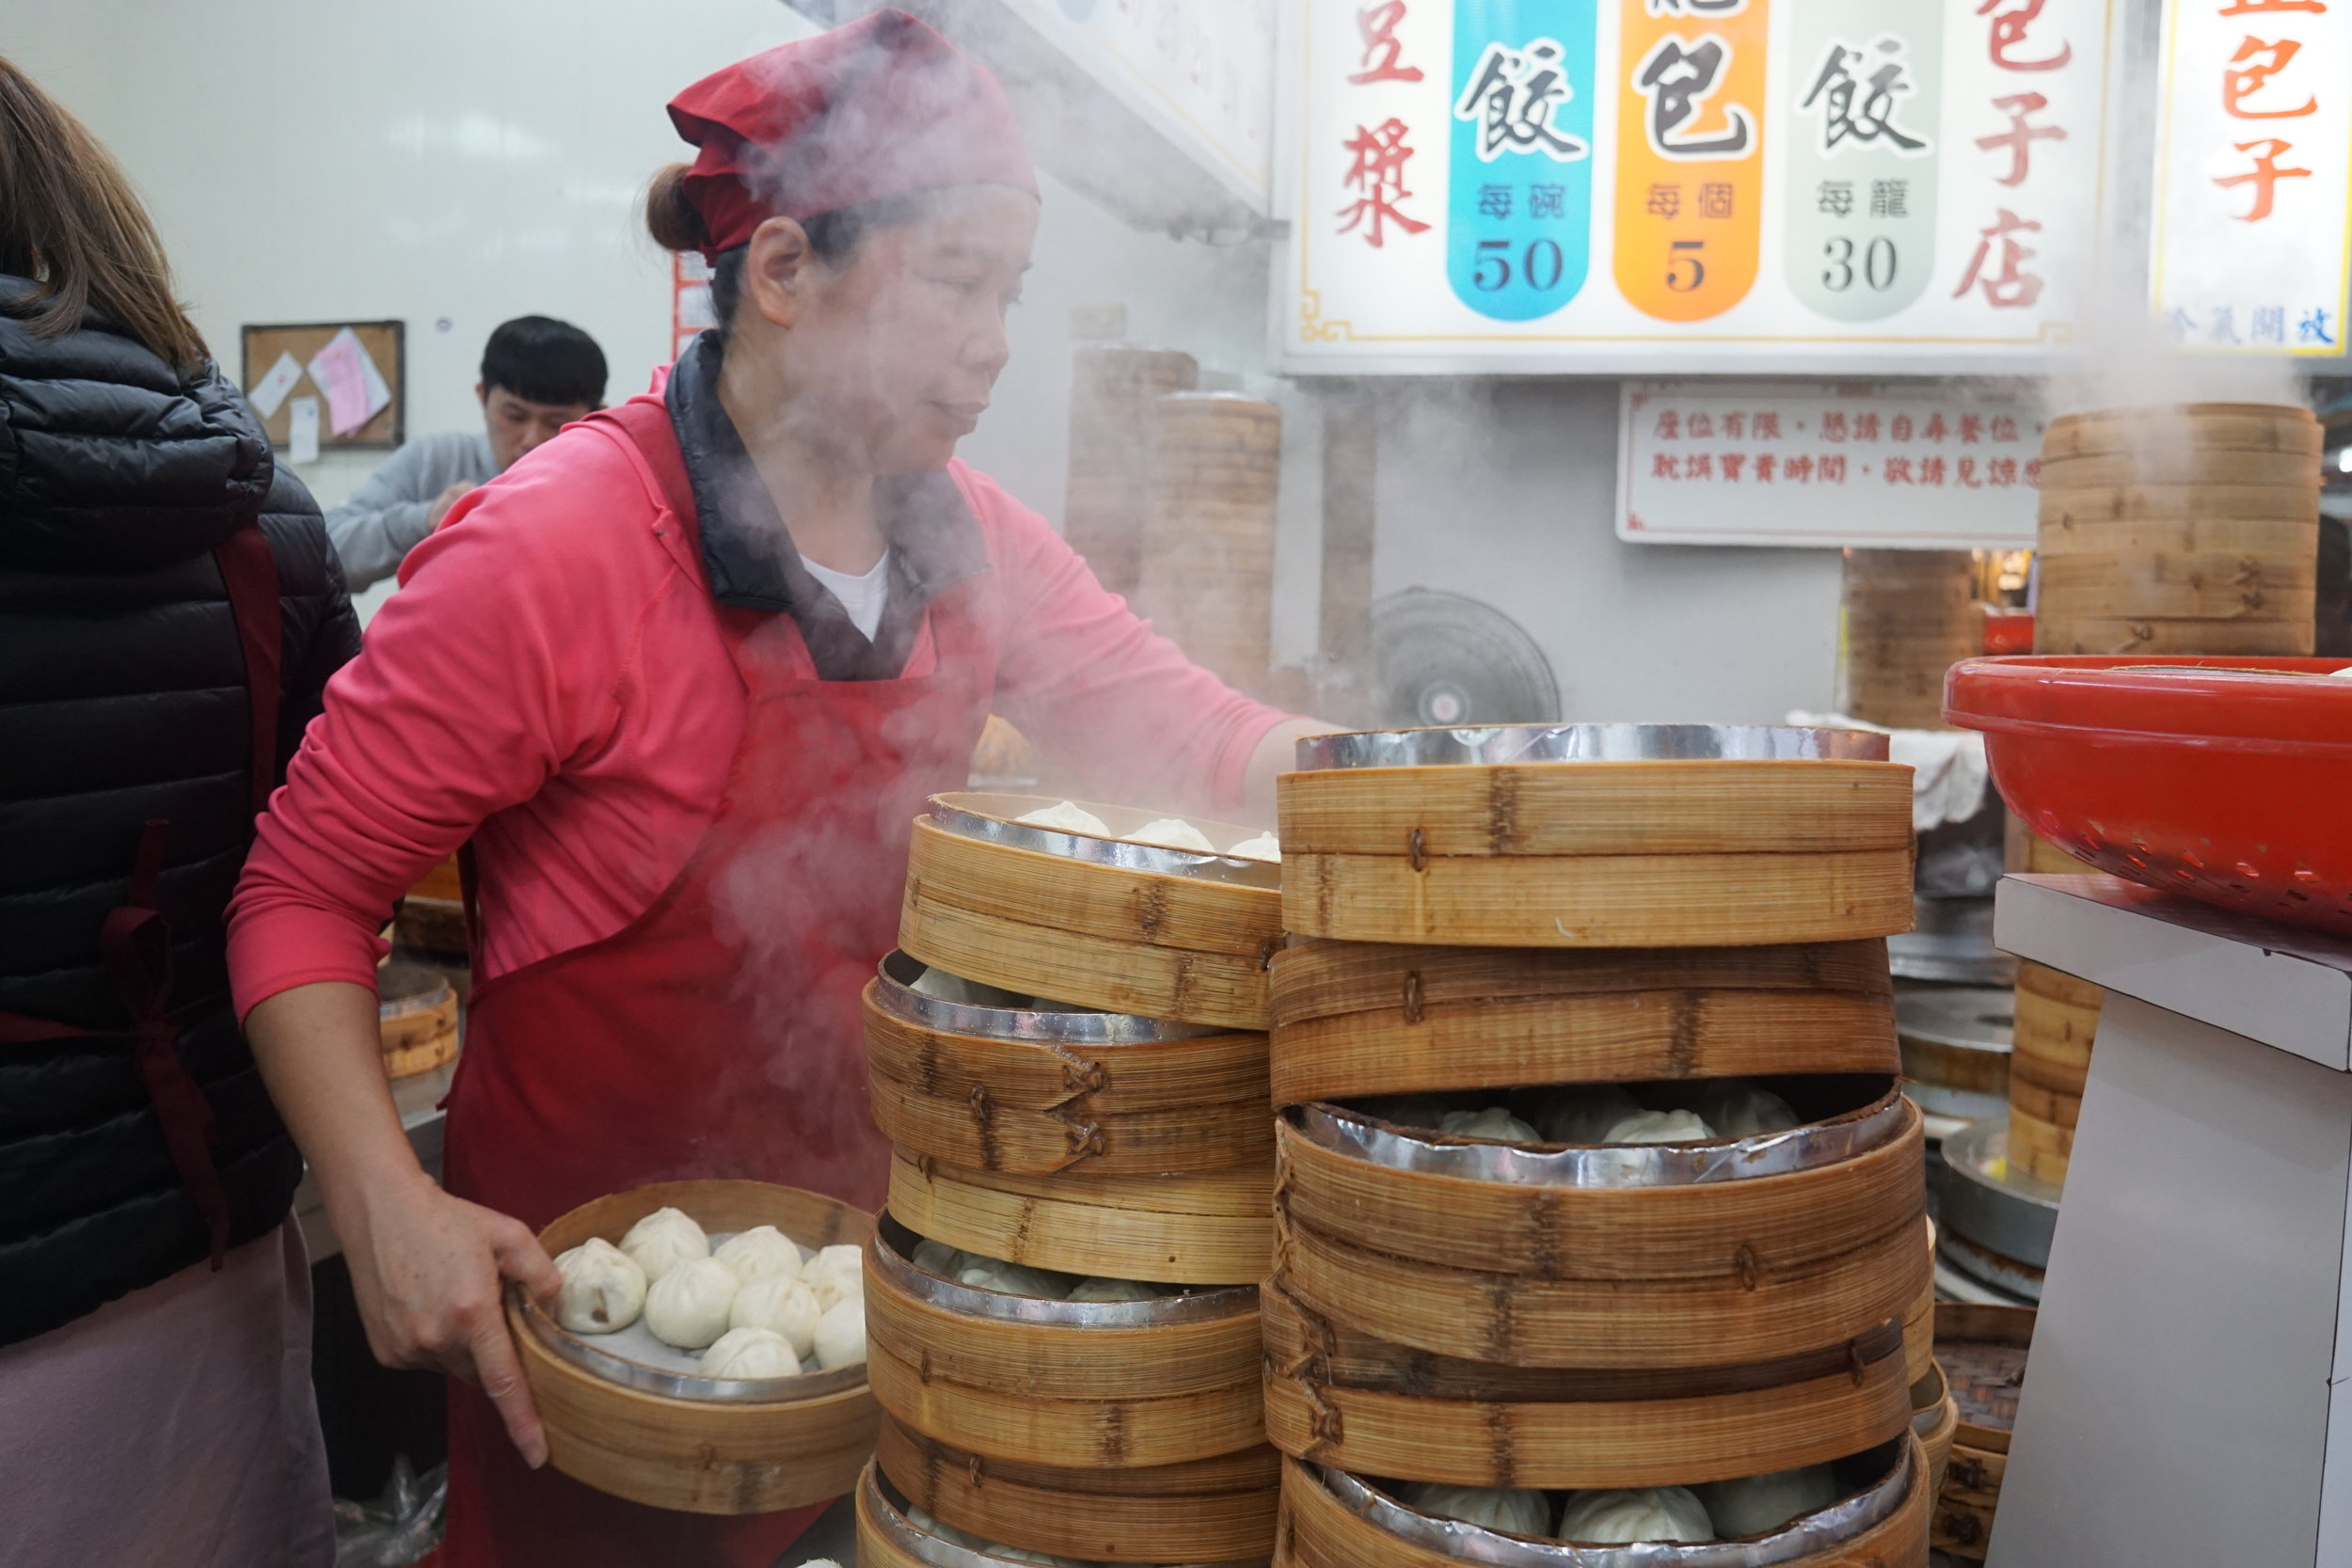 Dumplings-Taiwan-Cycling-East-Coast.jpg